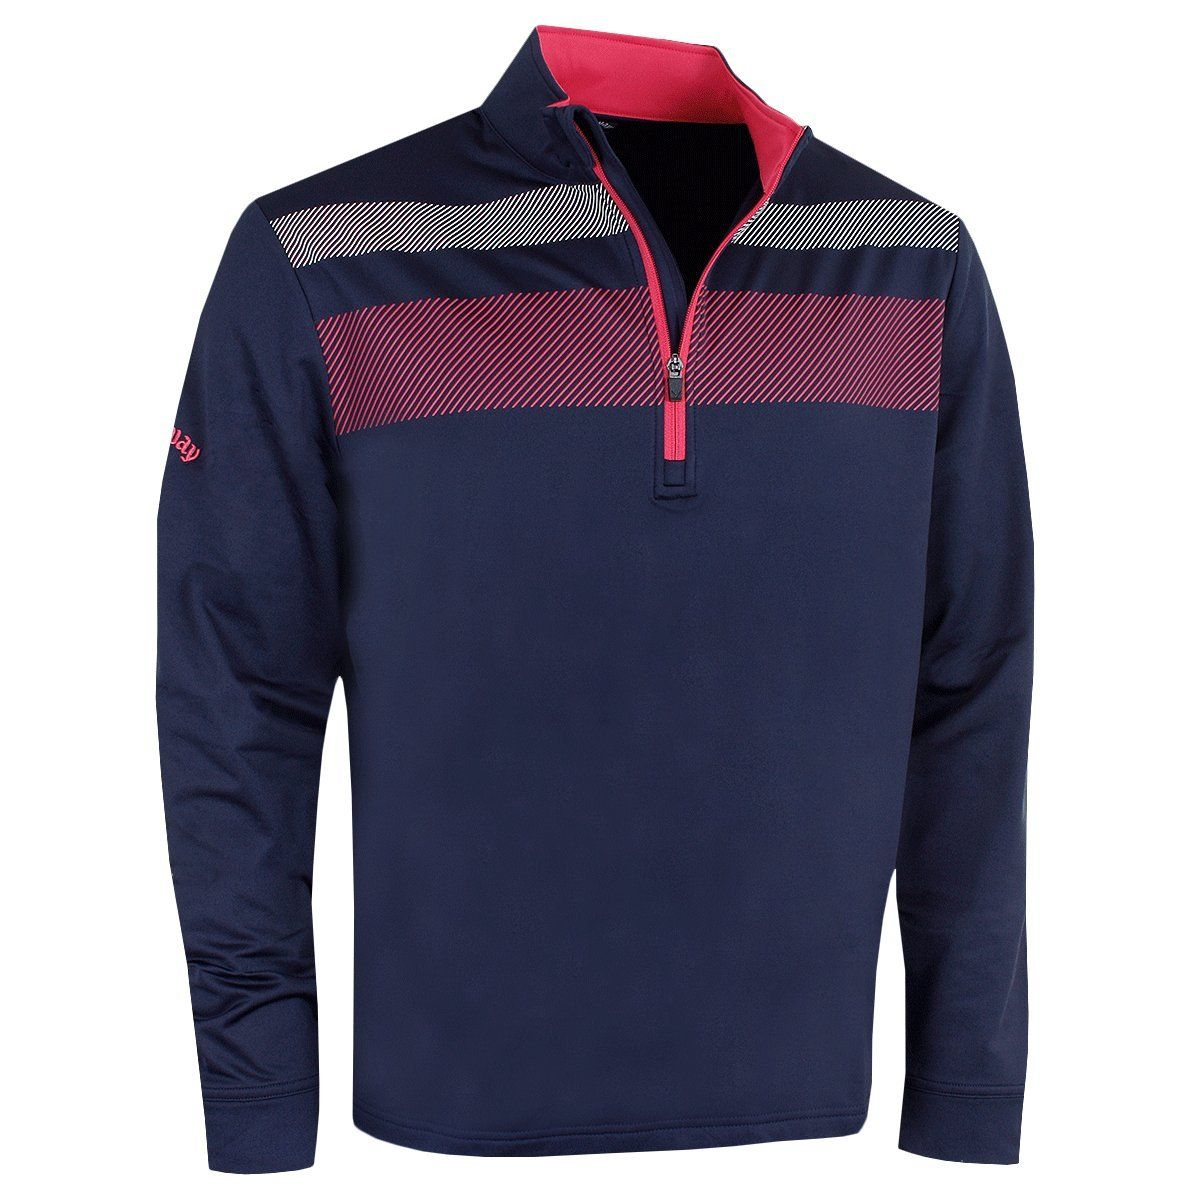 2e3391f5 Golf Clothing *** Callaway Golf 2018 Mens OptiDri ¼ Zip Blocked Stretch  Pullover Peacoat XXL -- Details can be located by clicking on the photo.